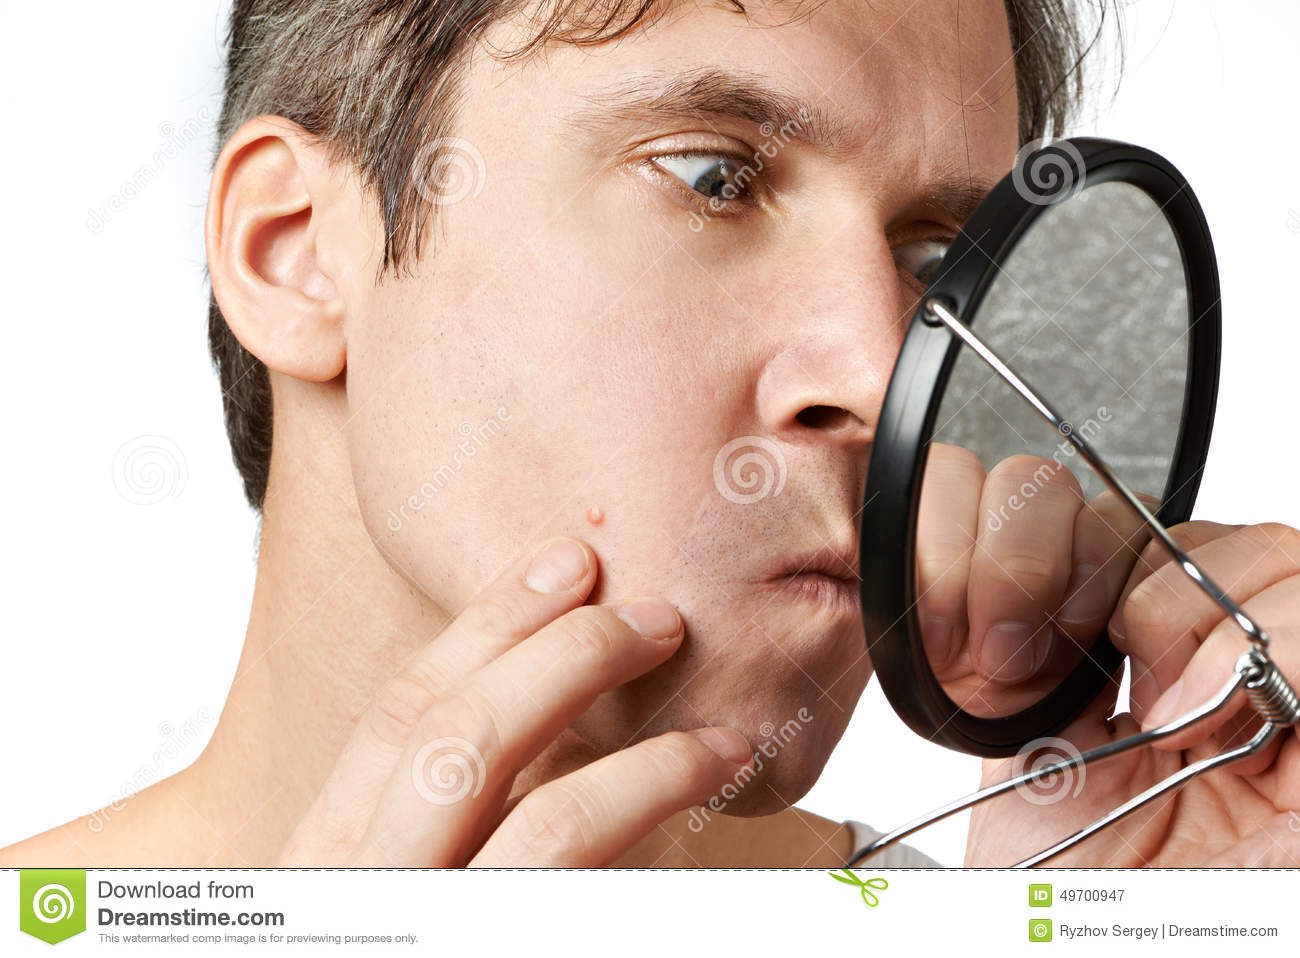 Man squeezing a pimple